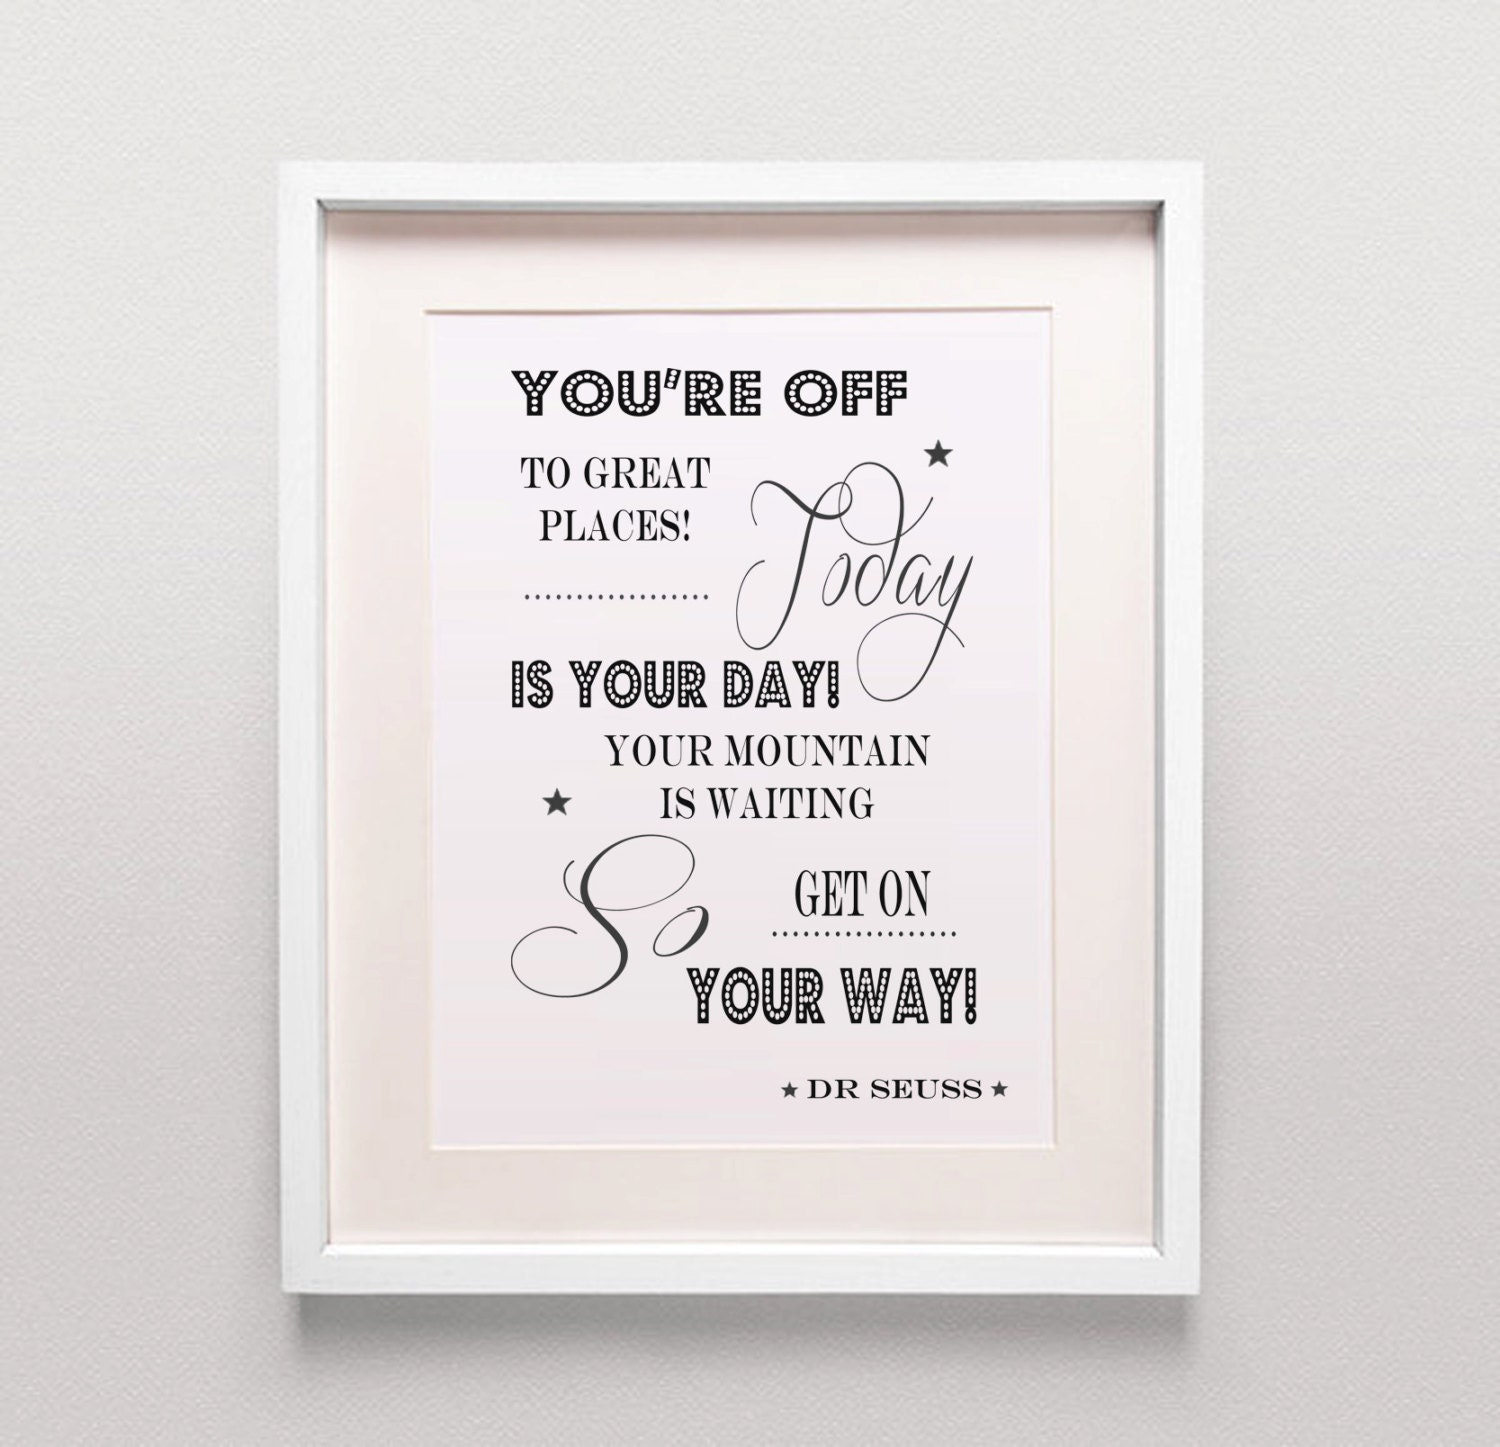 Dr Seuss Today Is Your Day Quote: Dr Seuss Quote / You're Off To Great Places By